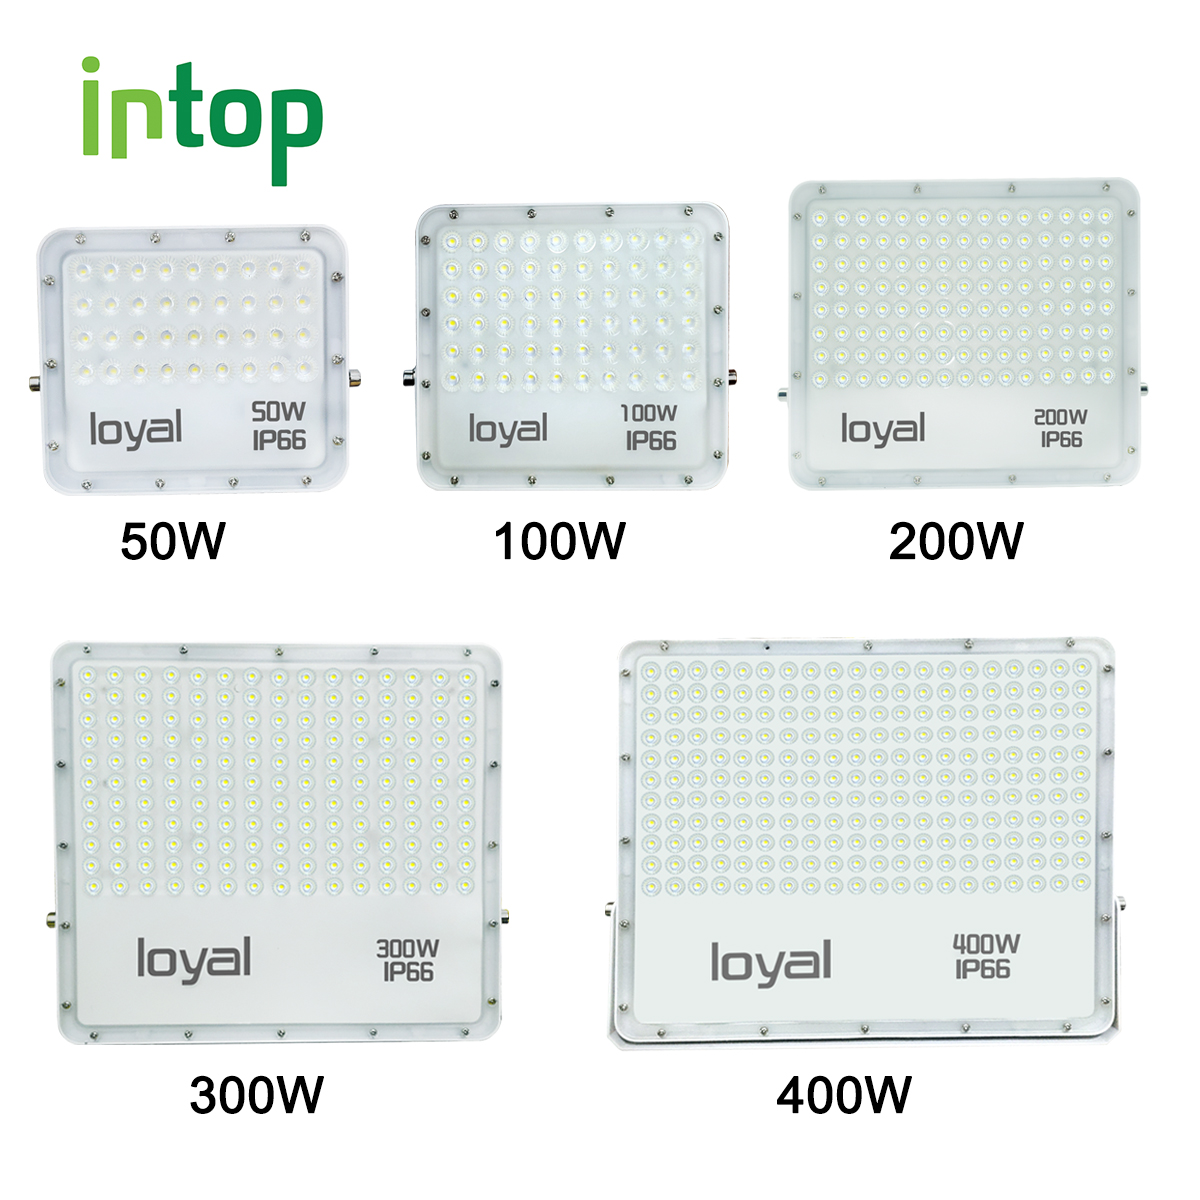 Led Wall Washer Flood Light Spotlight Floodlight Outdoor Lighting10W30W50W100W 150W200W300W400W Reflector Waterproof IP66 Garden